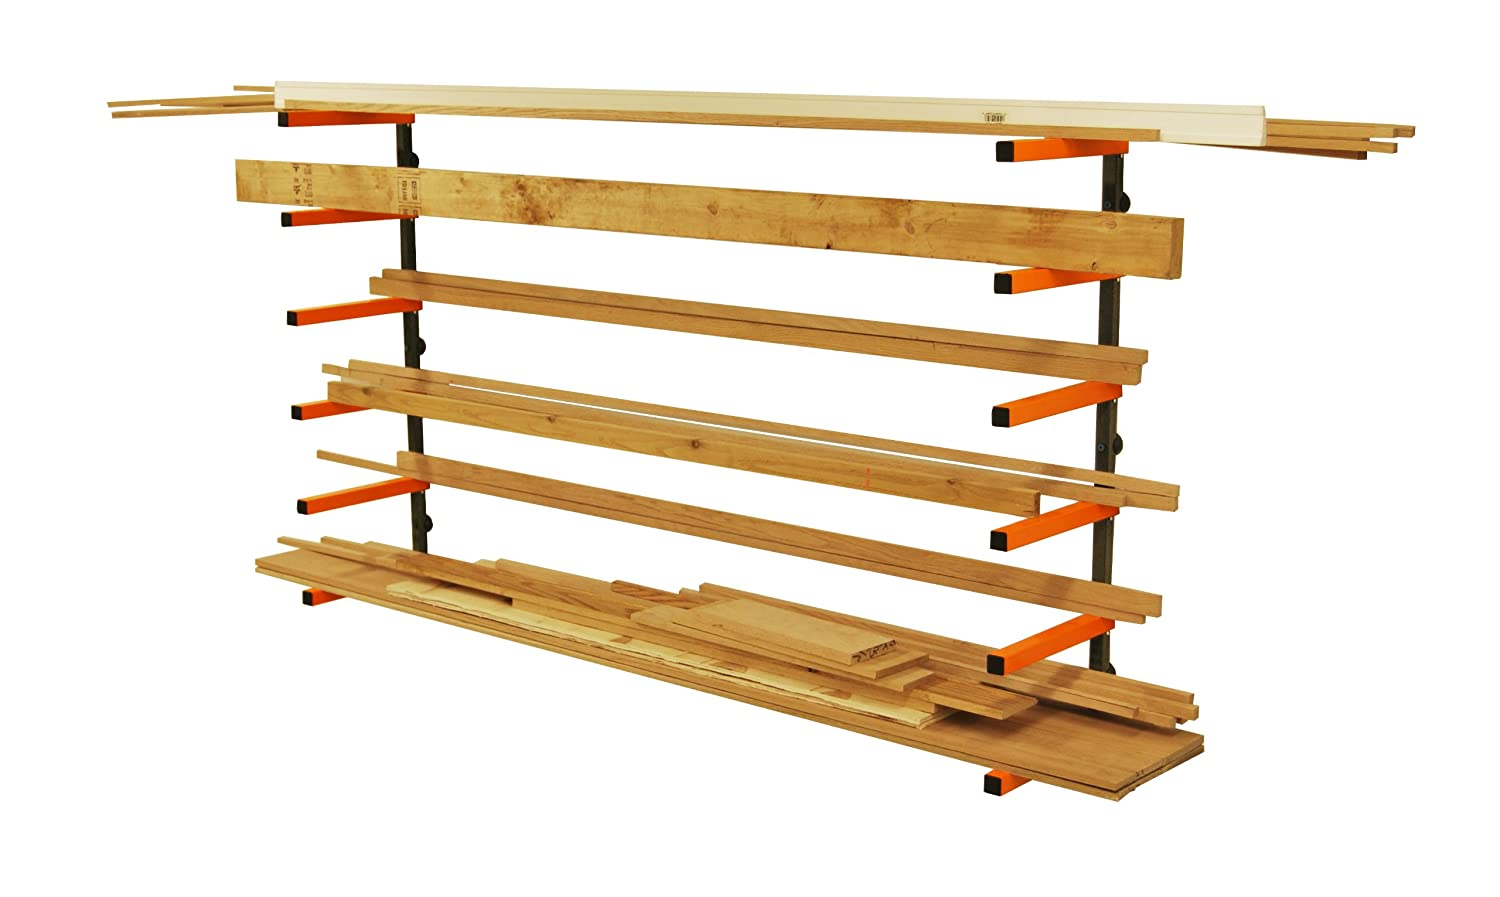 Lumber Storage Rack Portamate PBR 001. Six Level Wall Mount Wood Organizer  Rack That Holds Up To 100 Lbs. Per Level. Ideal For Both Indoor And Outdoor  Use.